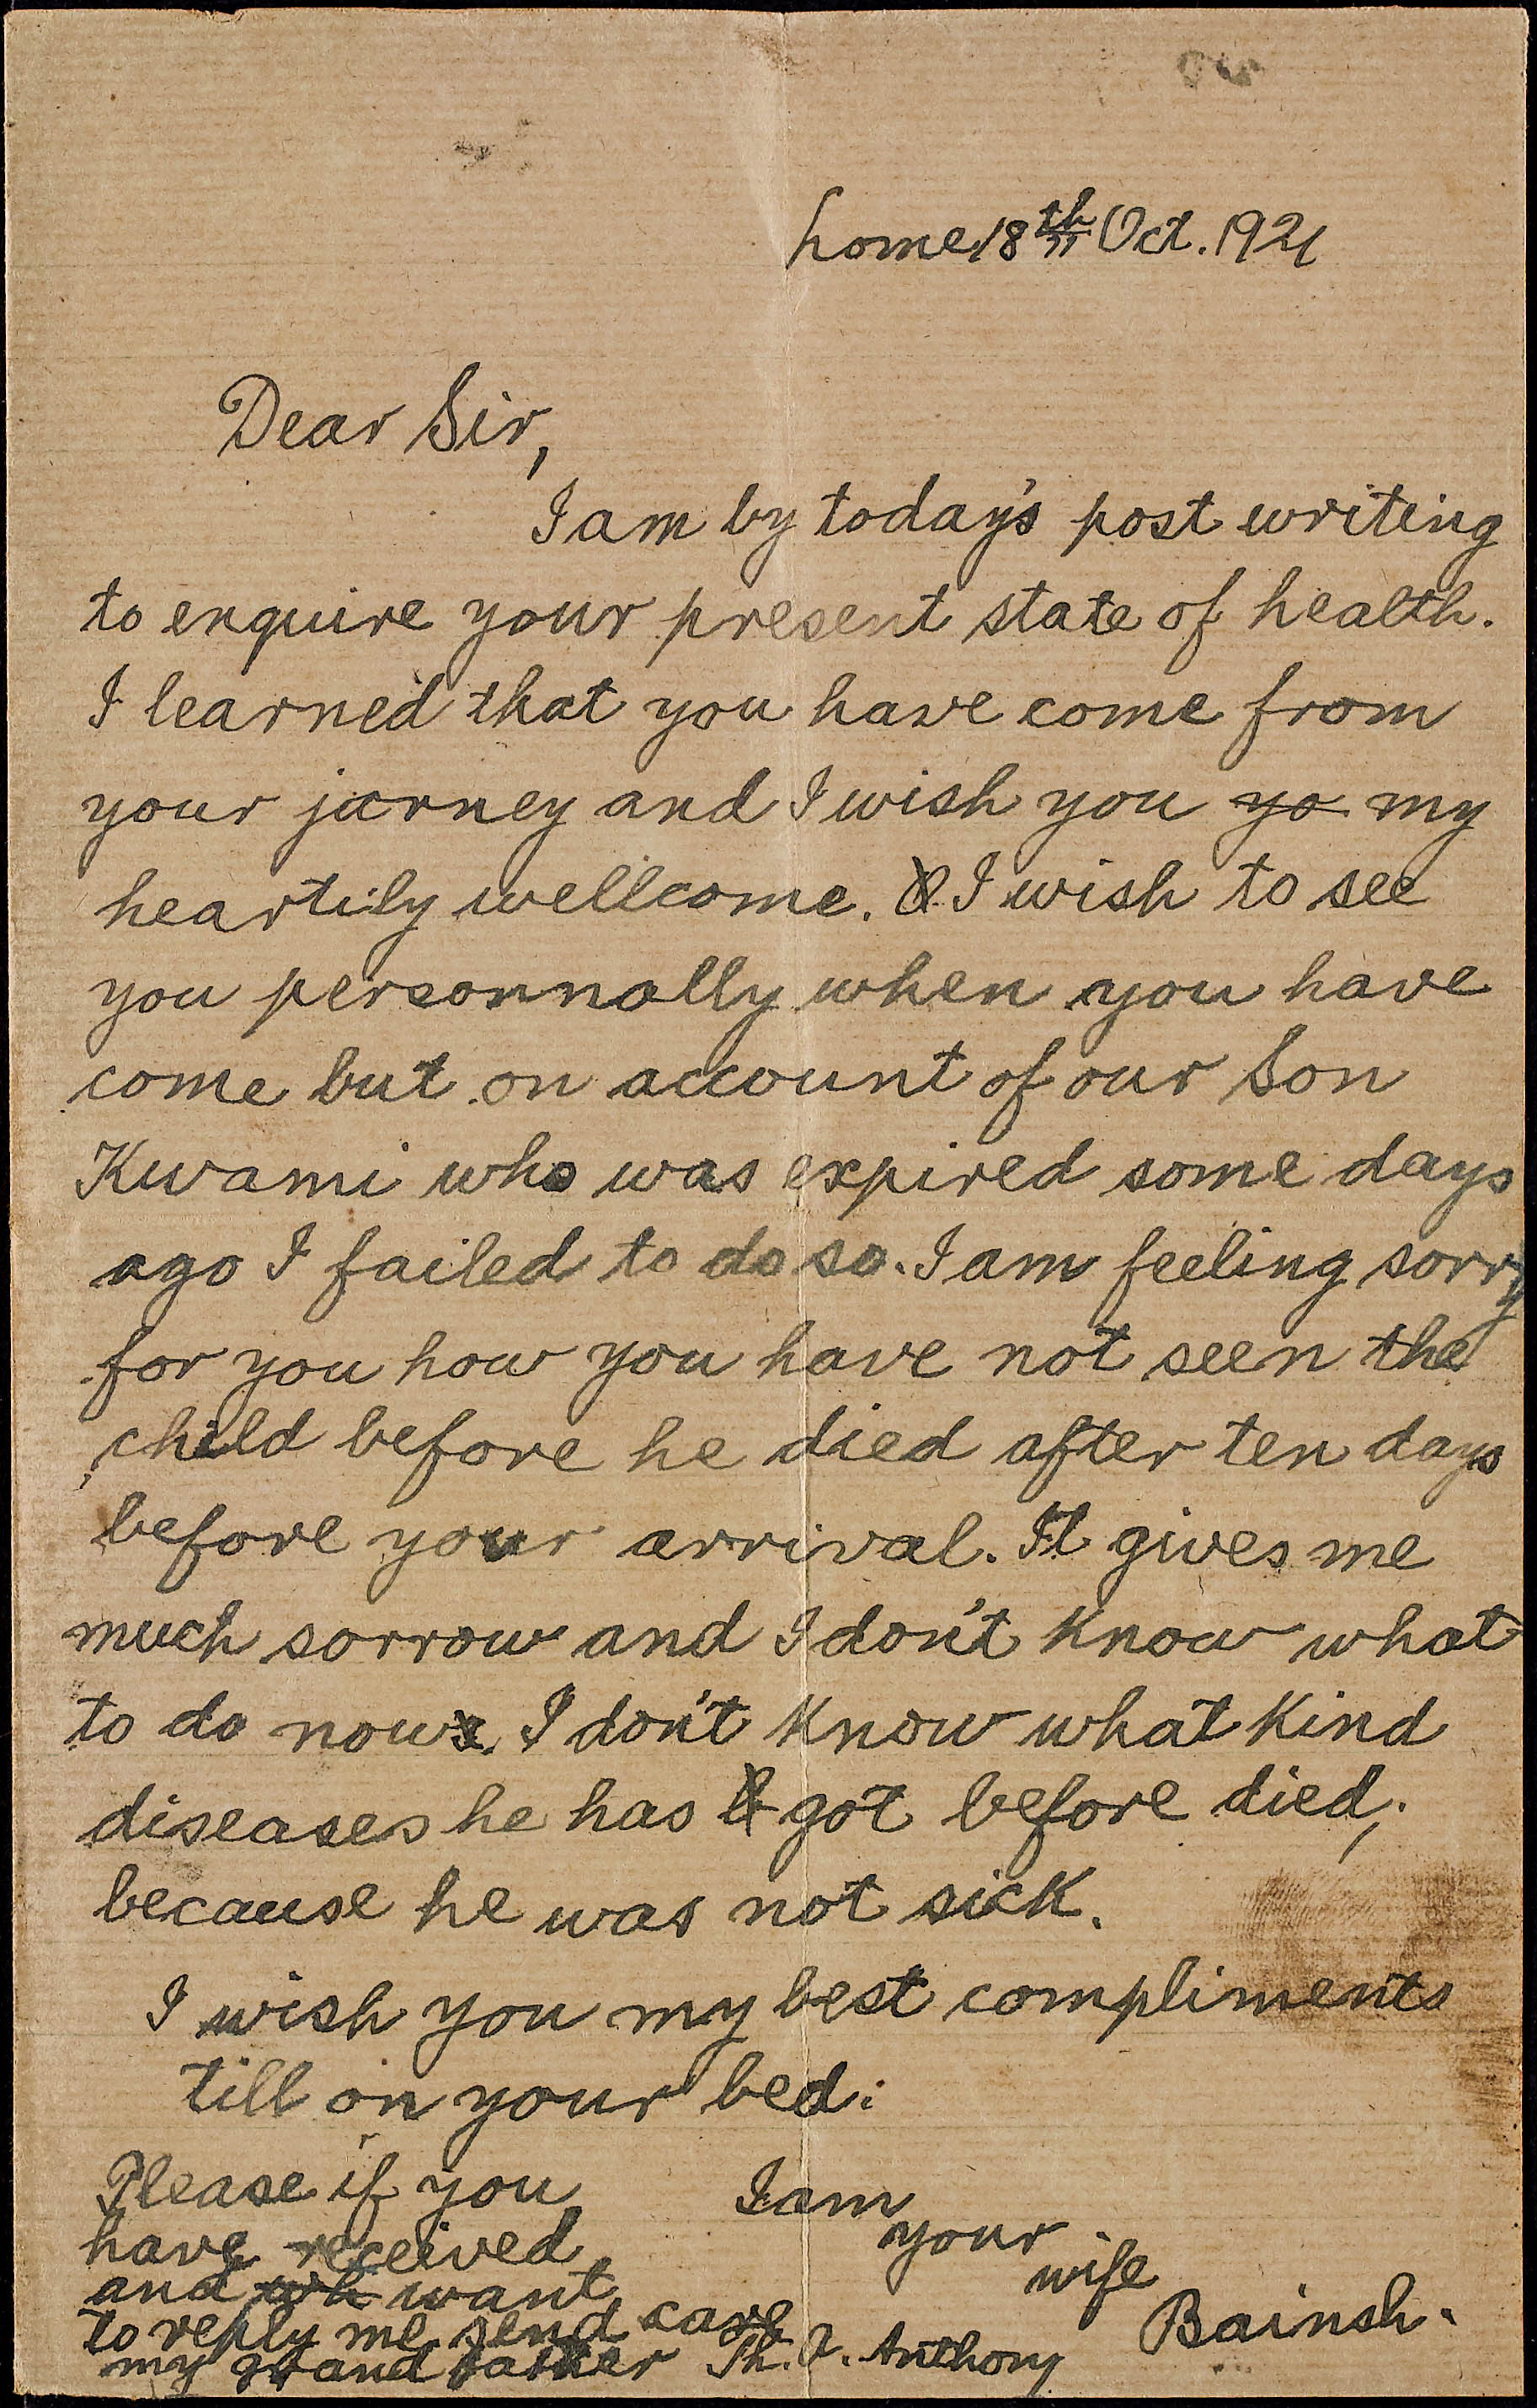 Letter from his wife Bainsh